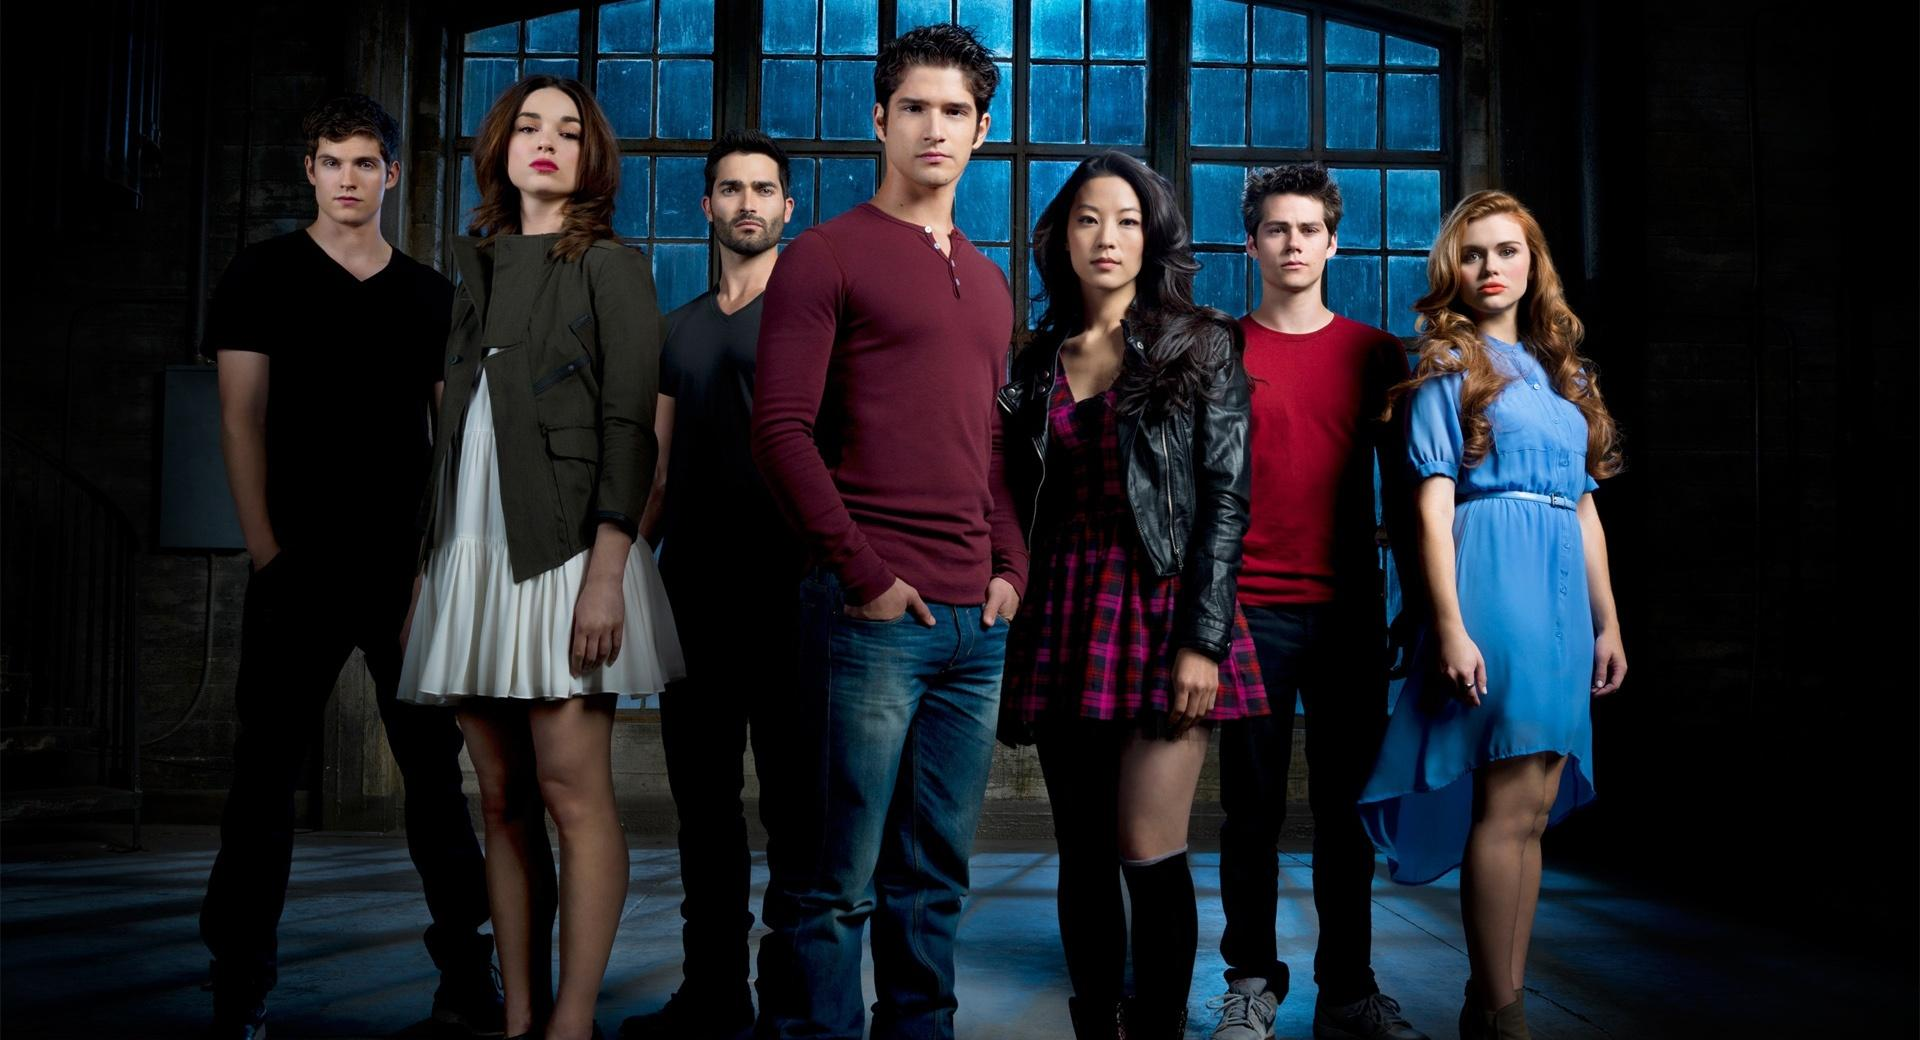 Teen Wolf Cast wallpapers HD quality